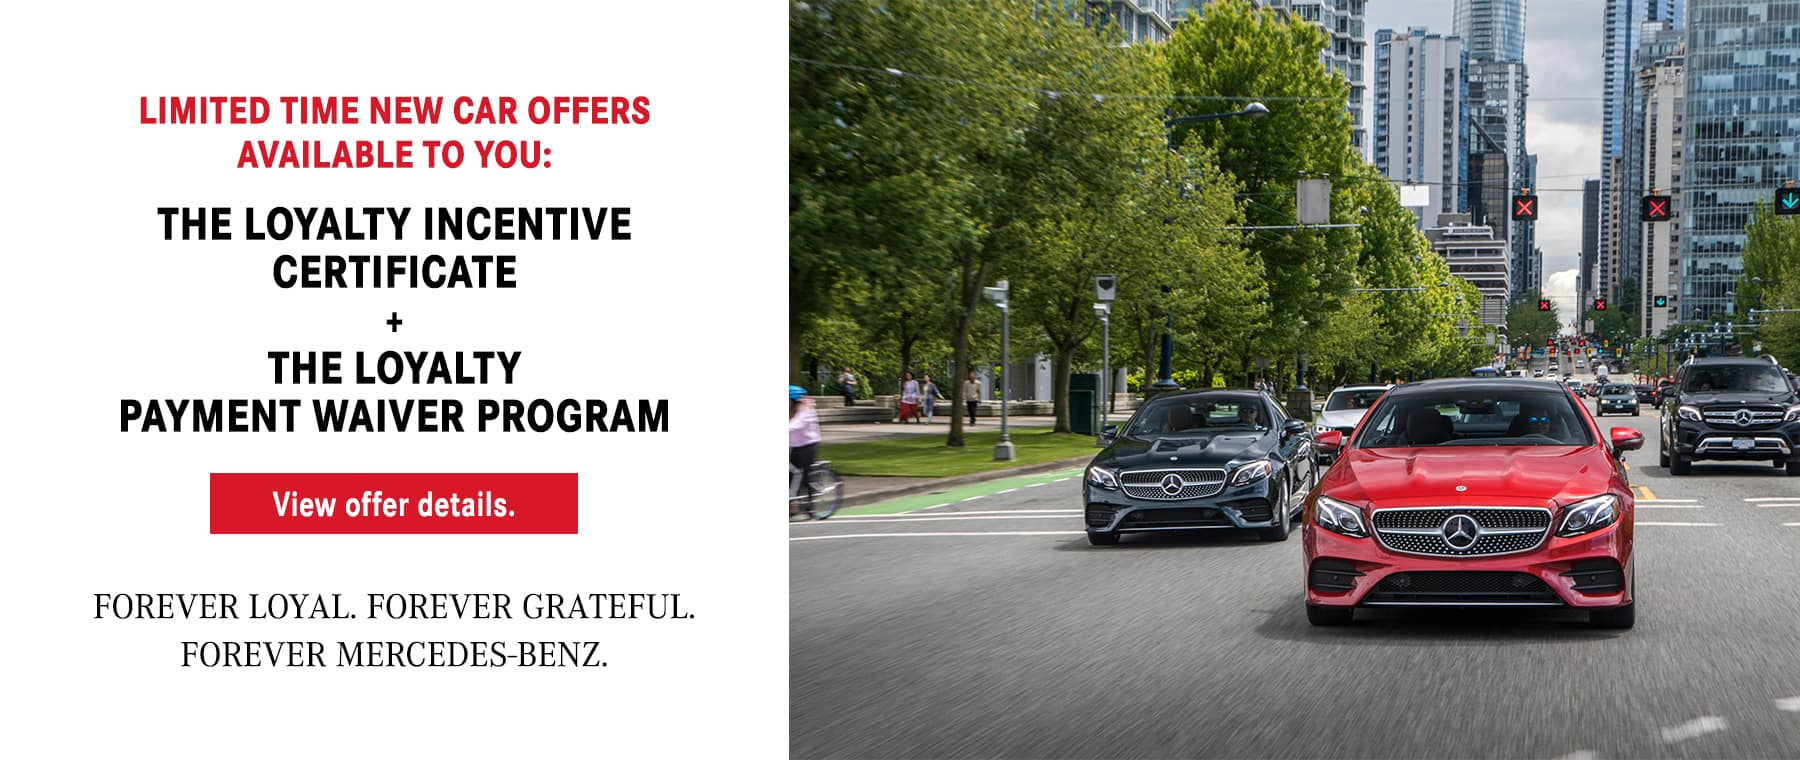 Awesome Mercedes Benz Of White Plains | Luxury Auto Dealer And Service Center, NY